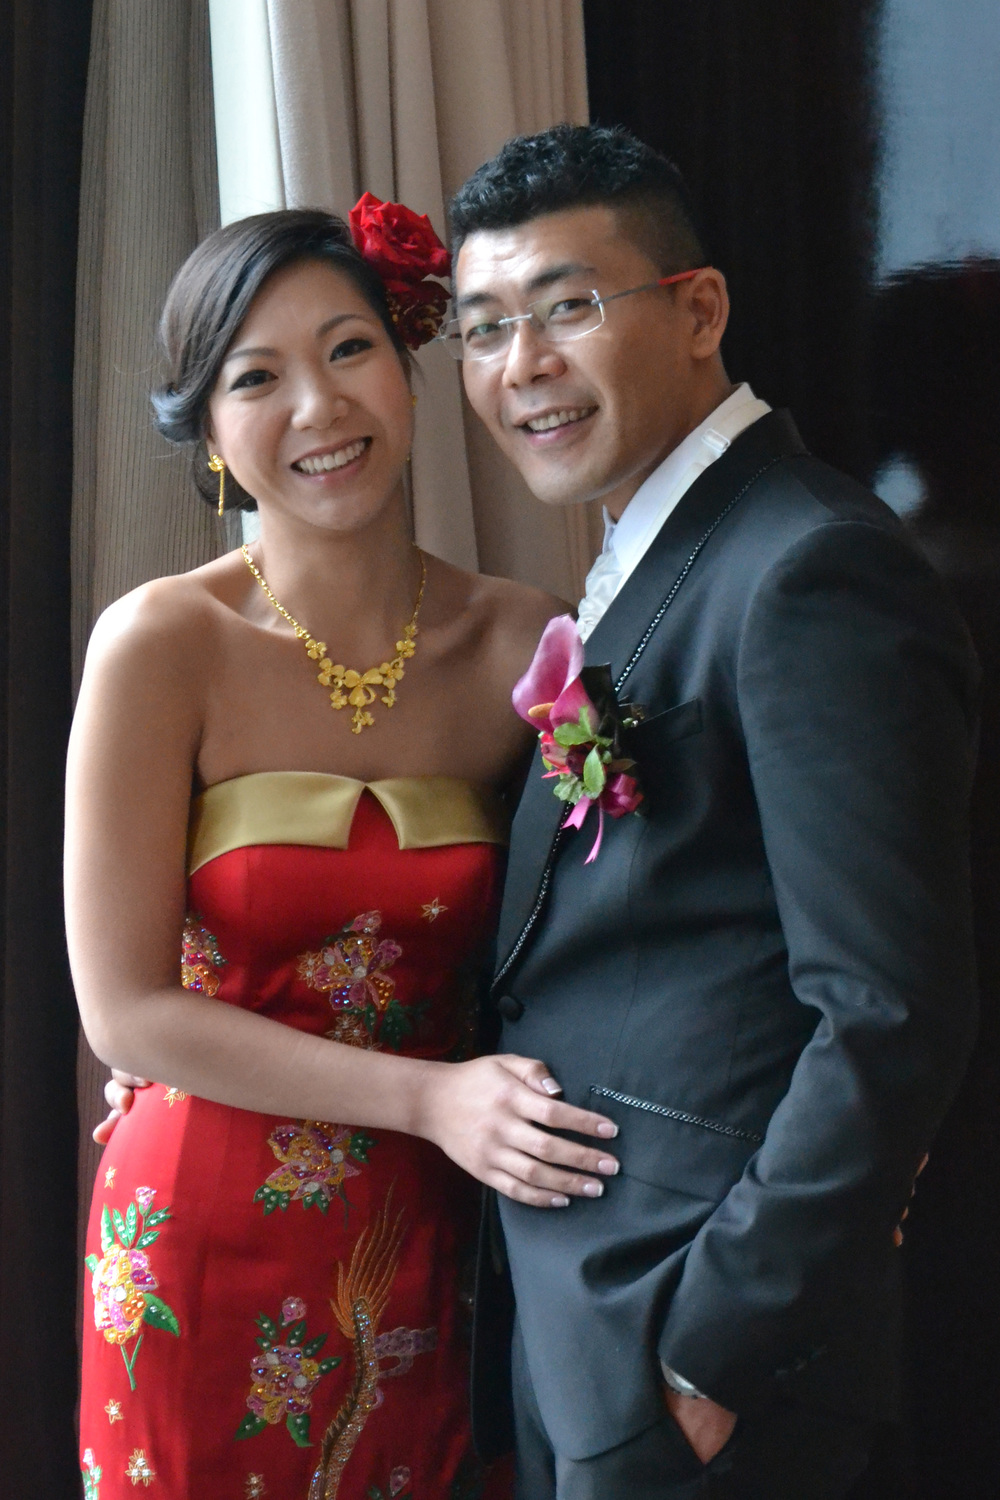 Hong kong Wedding Four Seasons Hotel 5.jpg